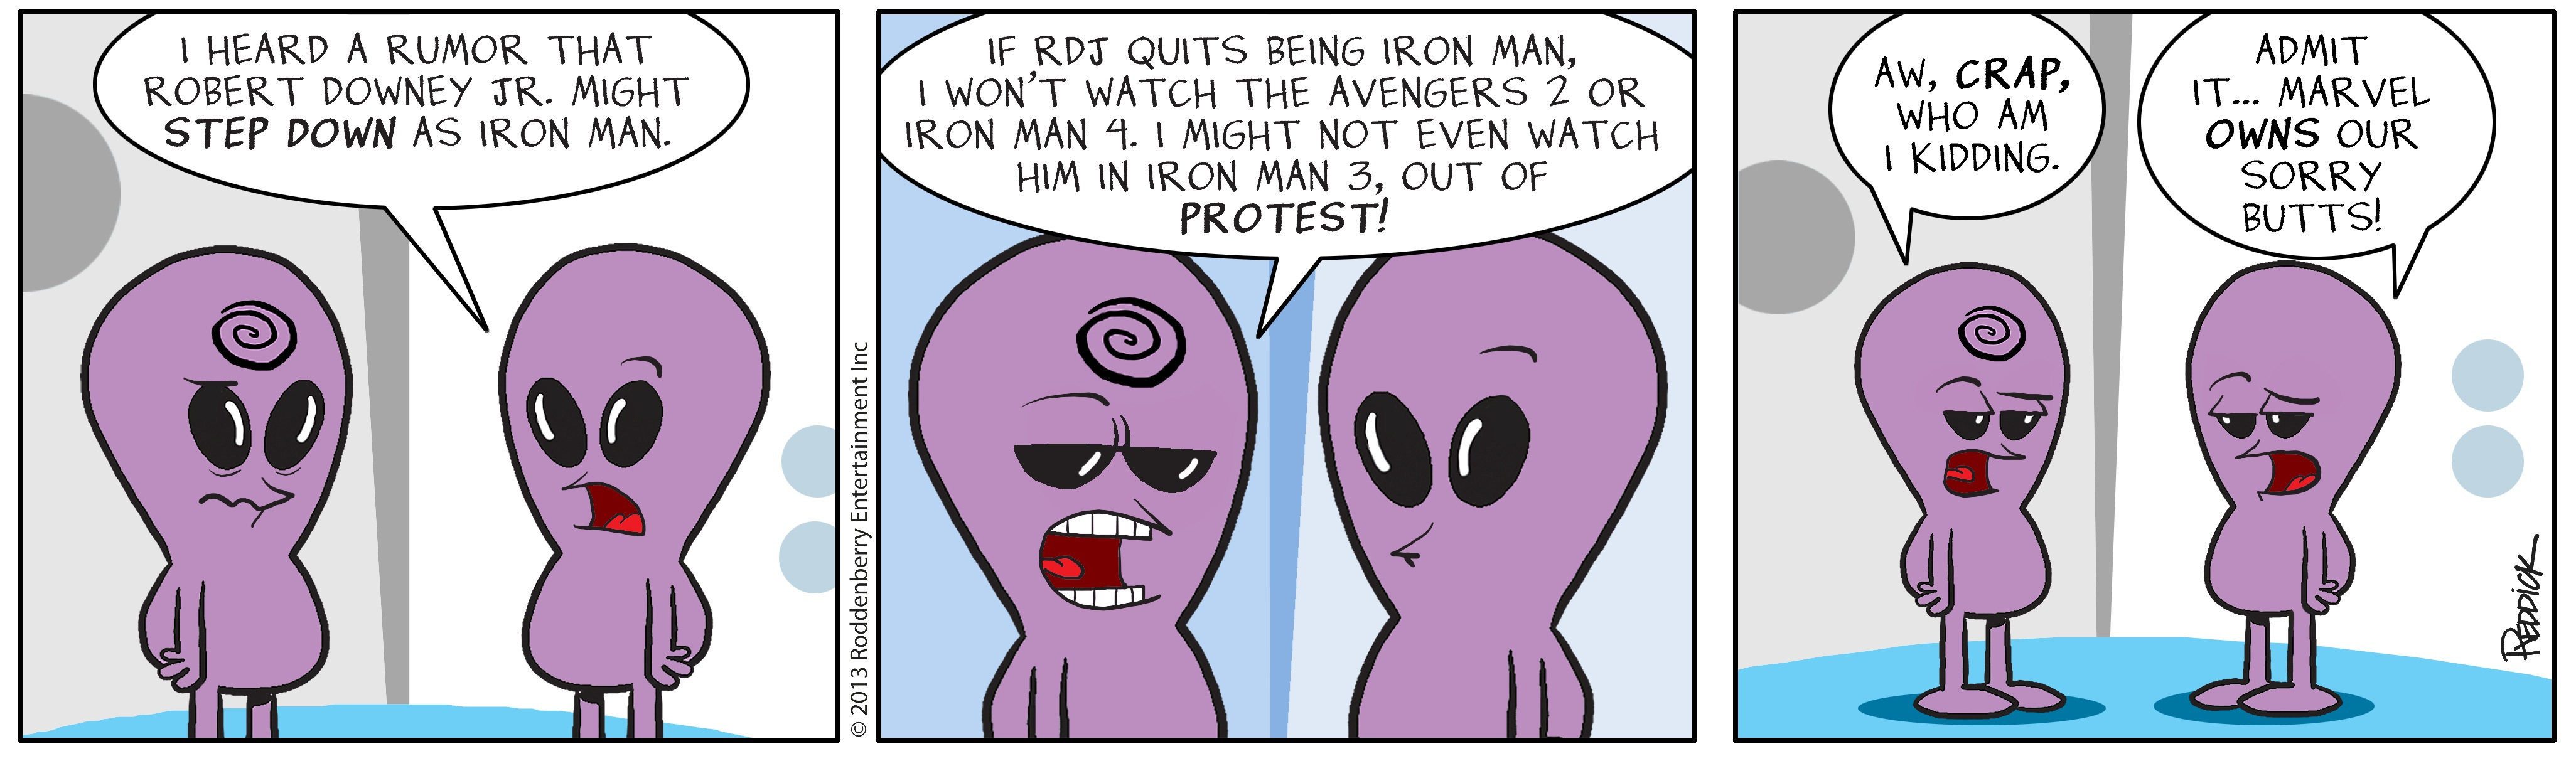 Strip 636: Marvel